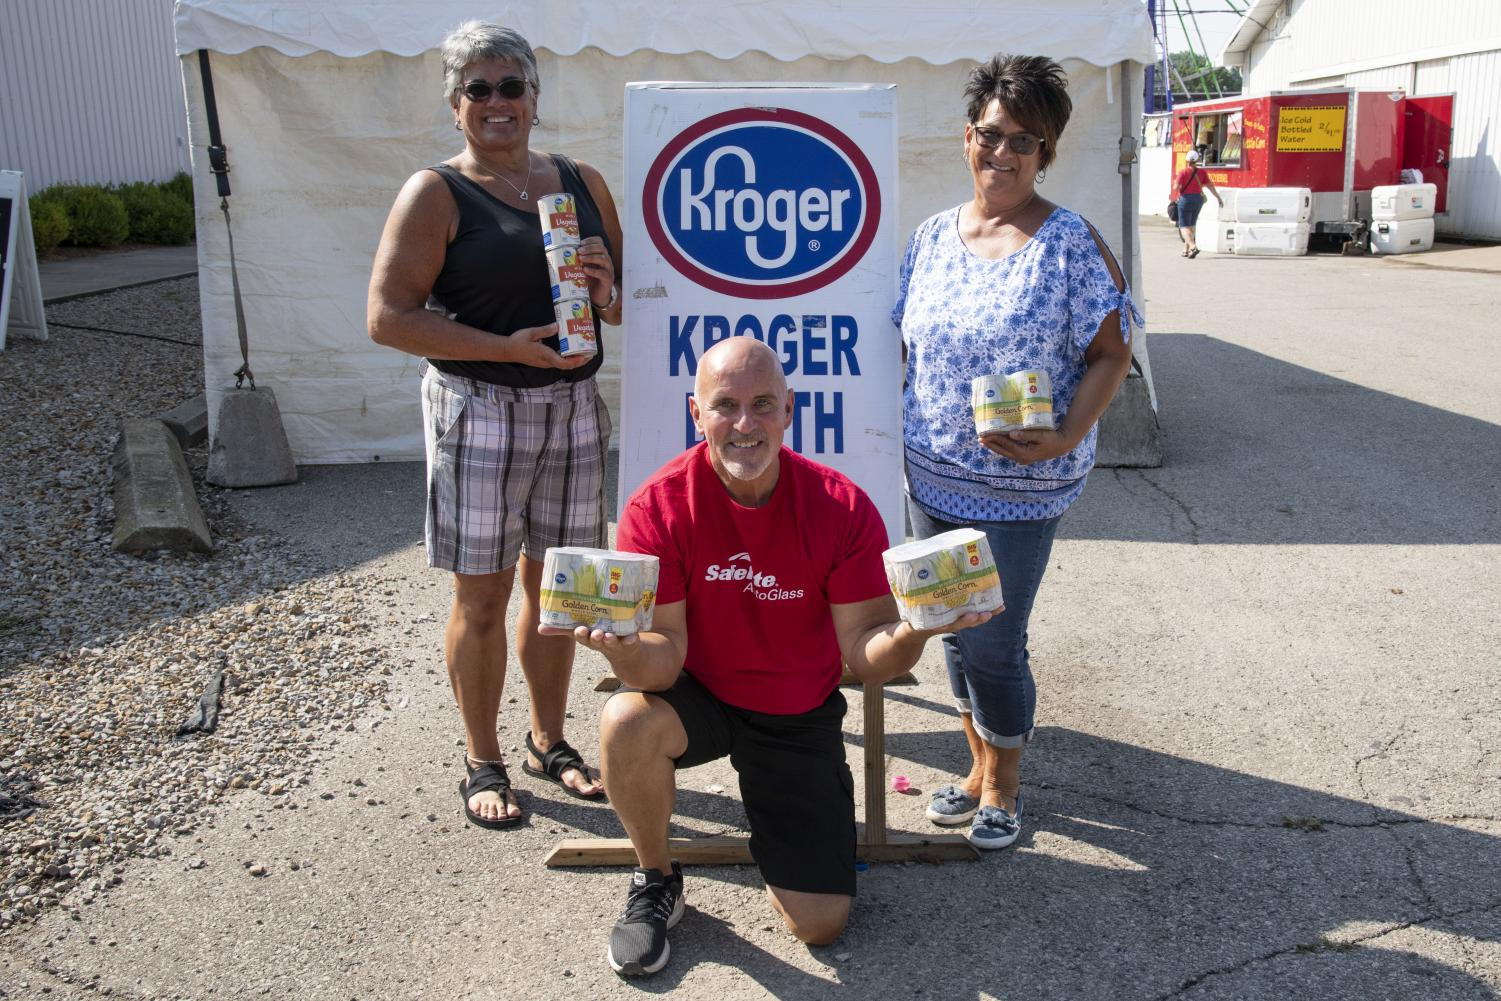 Pictured left to right are Marti King of Kroger, Al Morgan of Safelight AutoGlass and Keely Warden of Christ's Table.